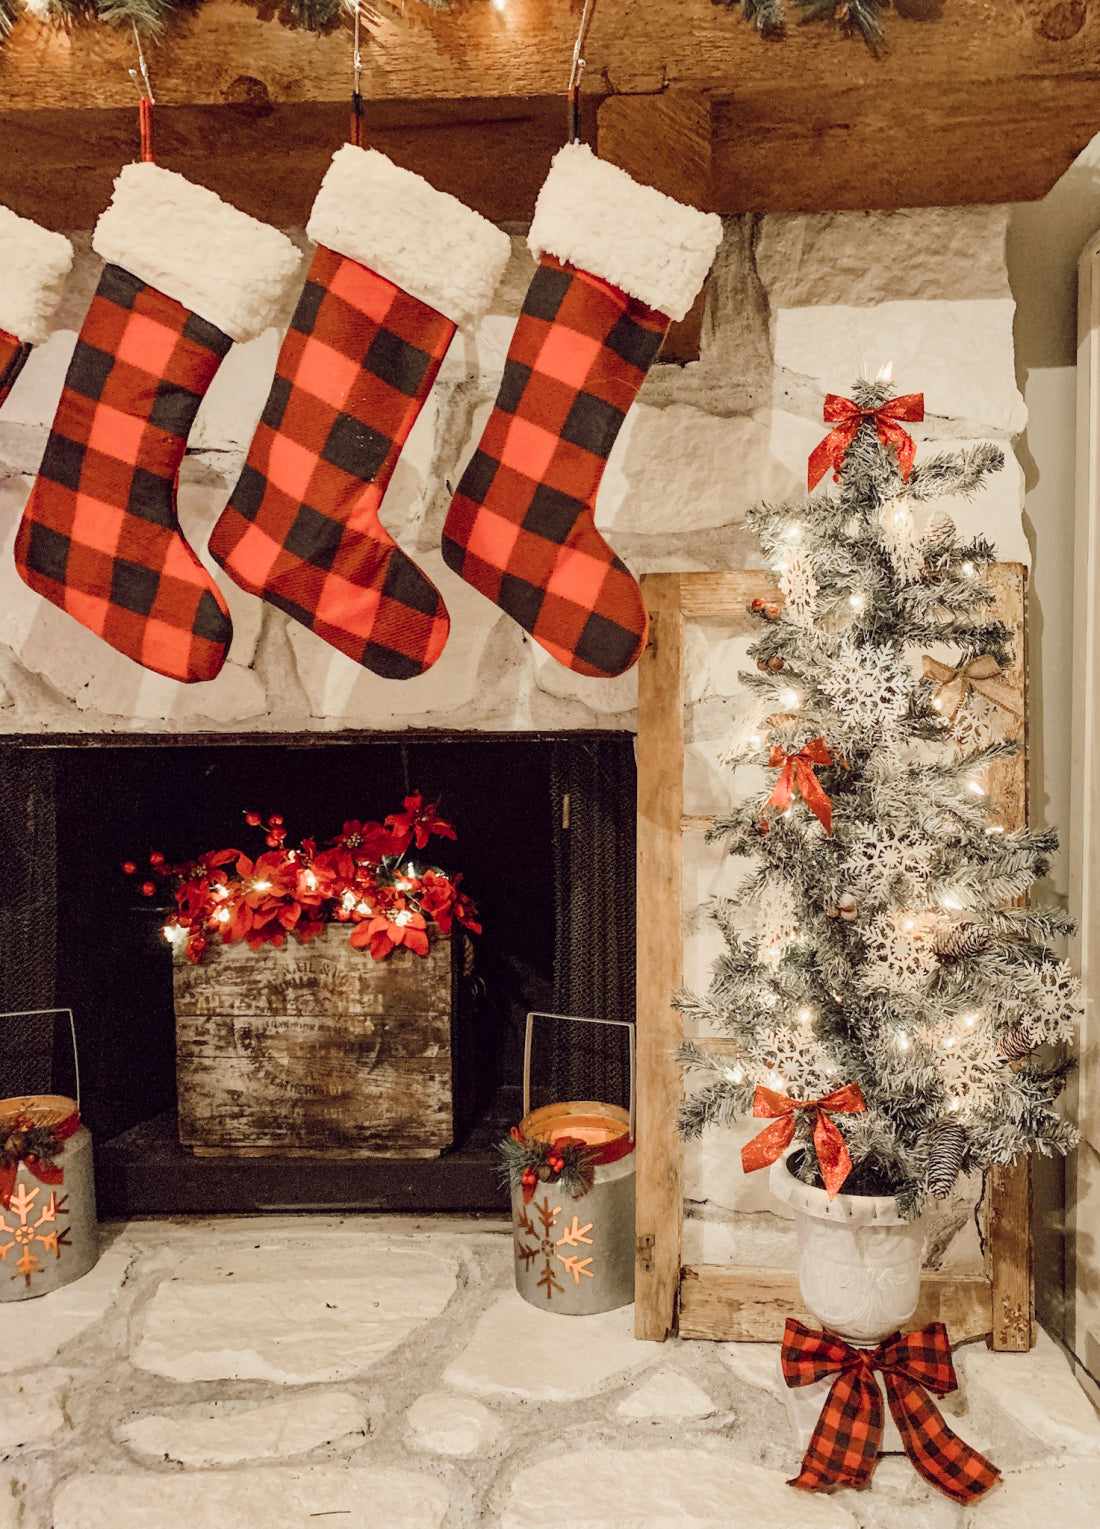 another view of the plaid stockings by the fireplace